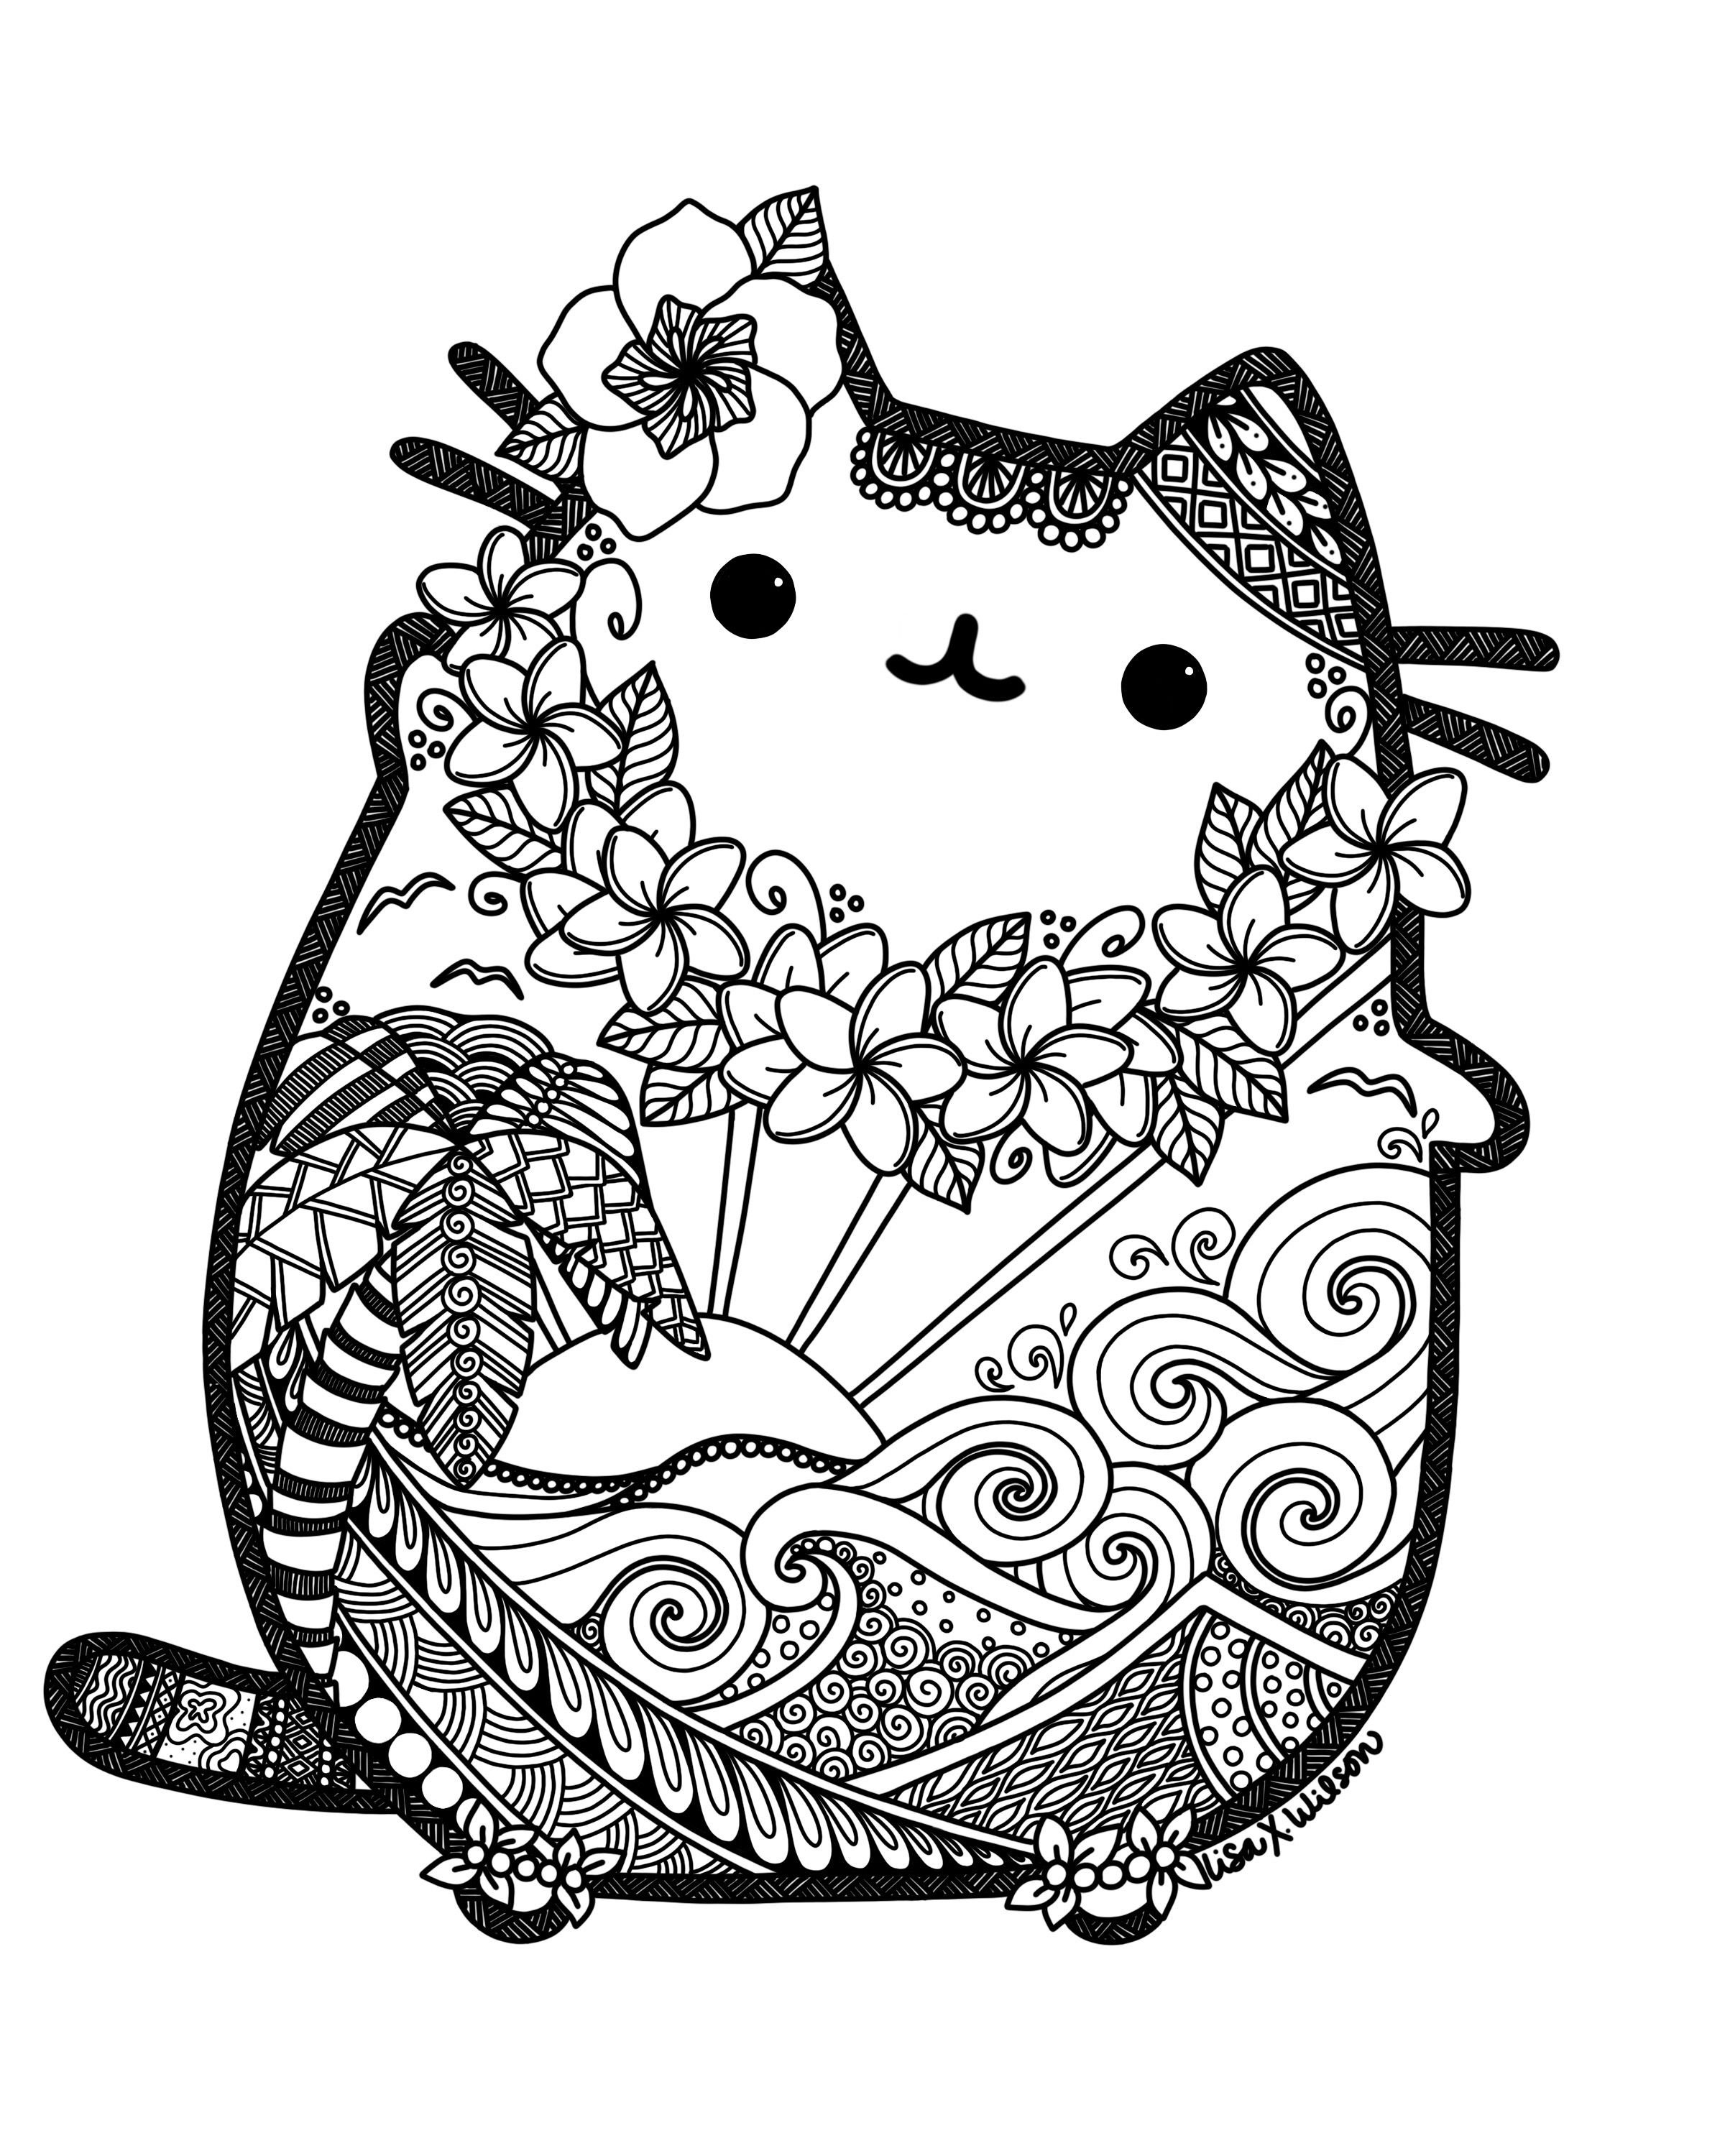 Hawaiian Pusheen Fan Art Pusheen Coloring Pages Cat Coloring Page Mandala Coloring Pages